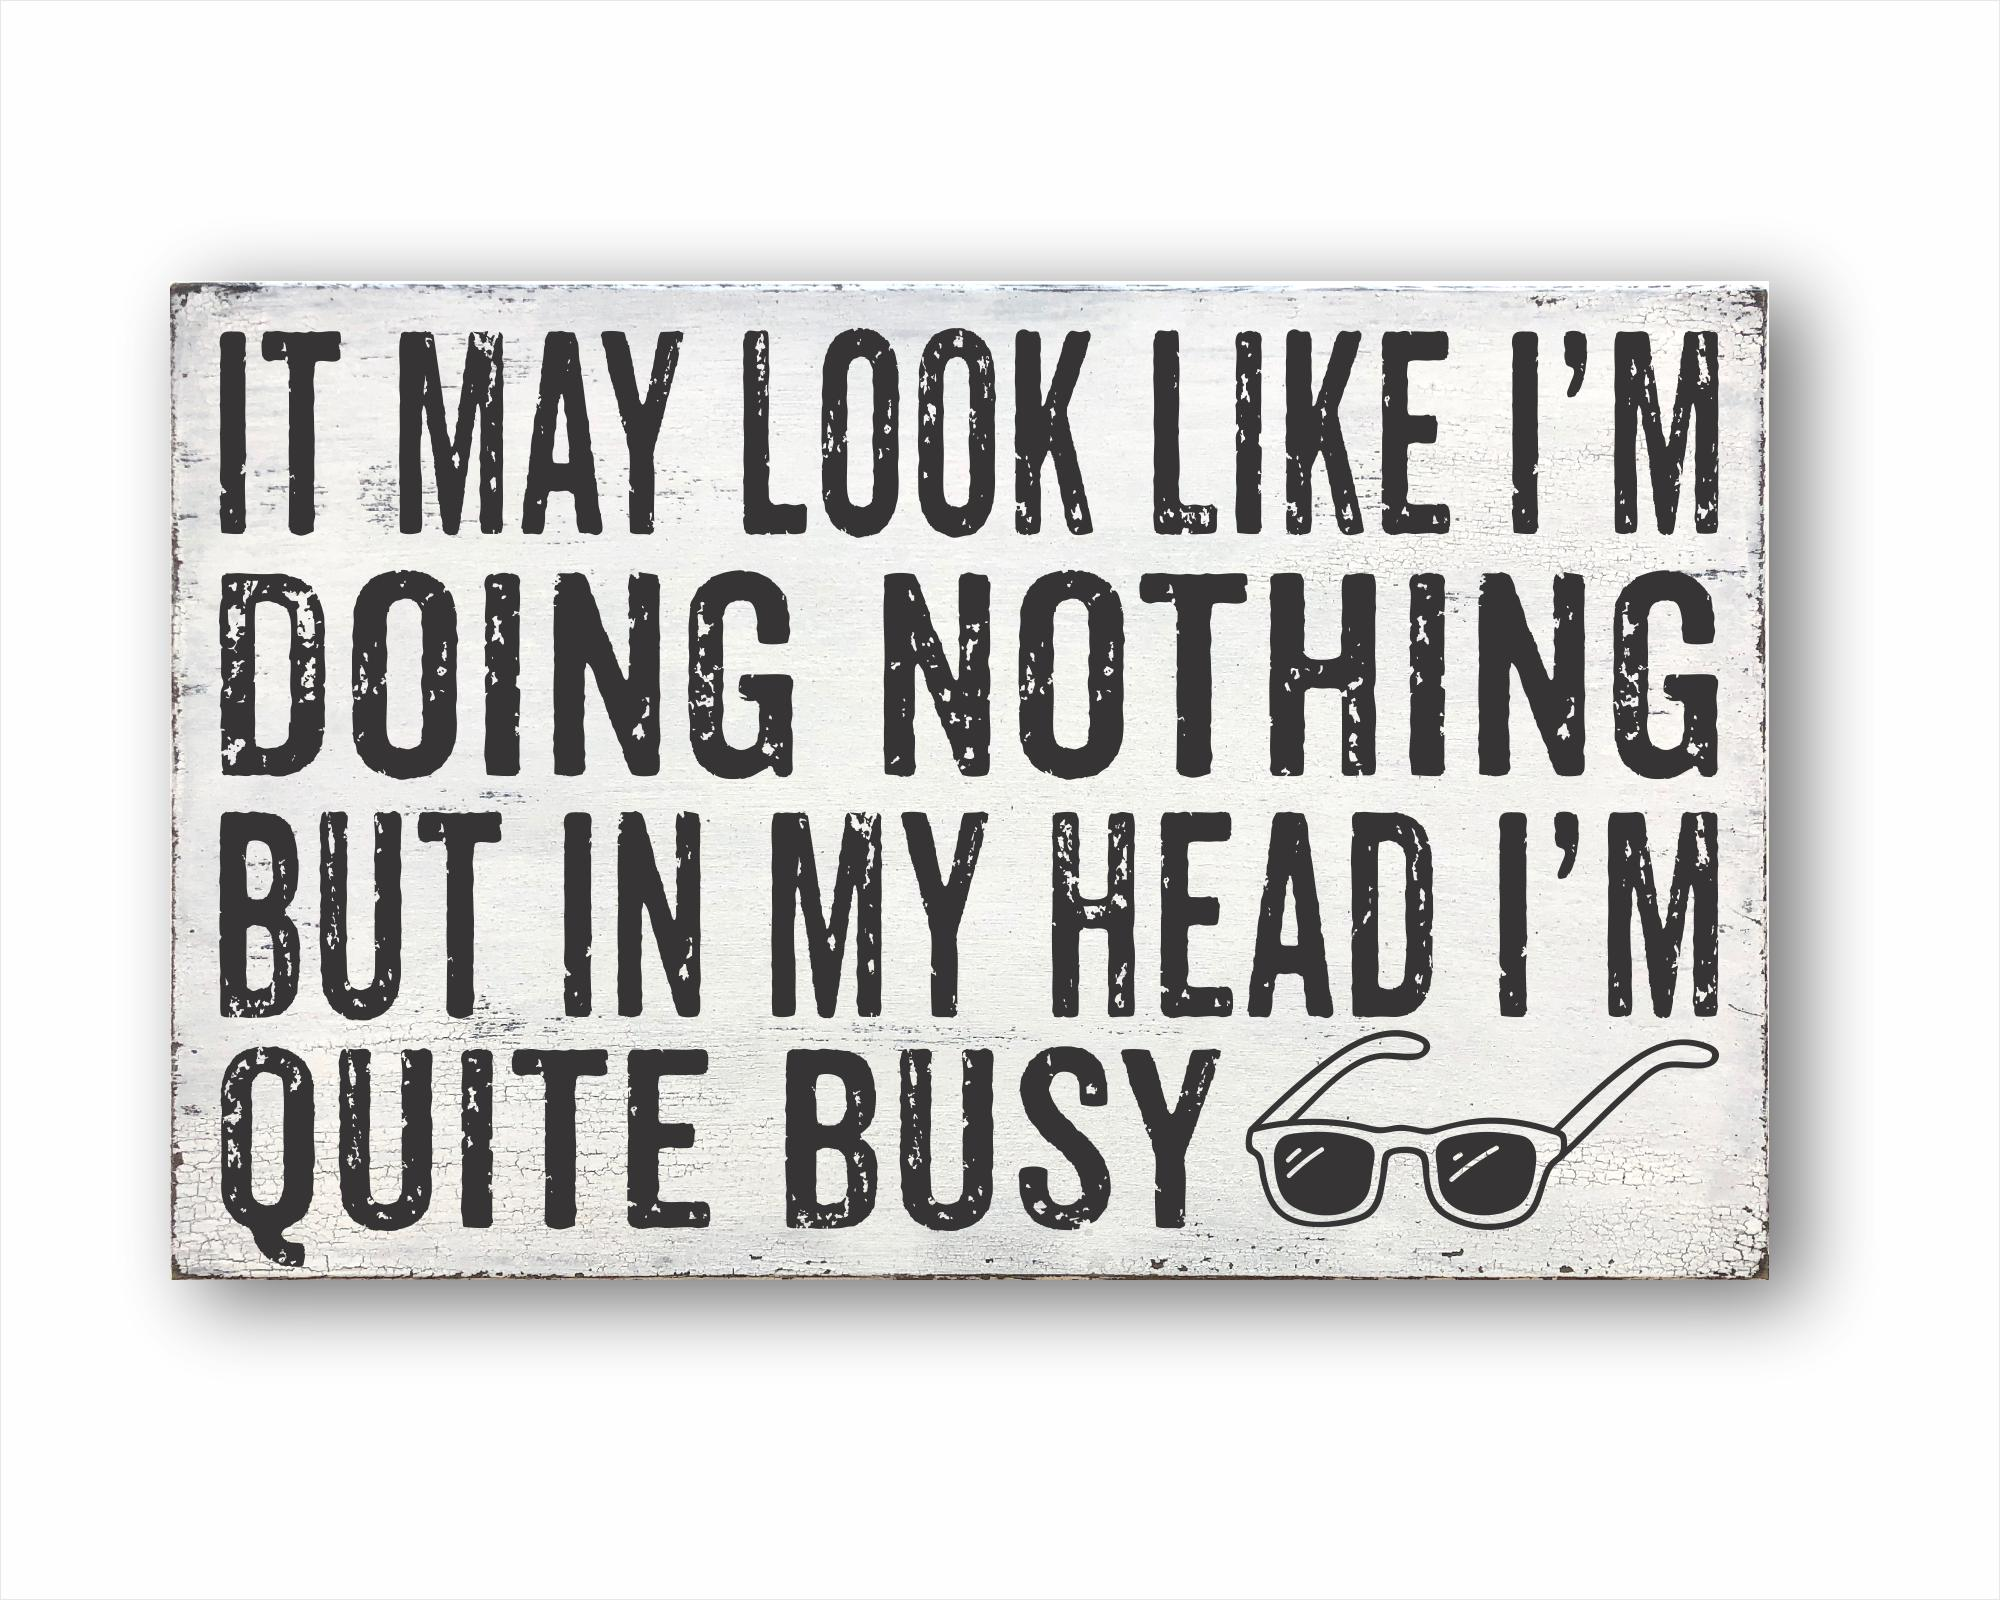 It May look Like I'm Doing Nothing But In My Head I'm Quite Busy: Rustic Rectangular Wood Sign